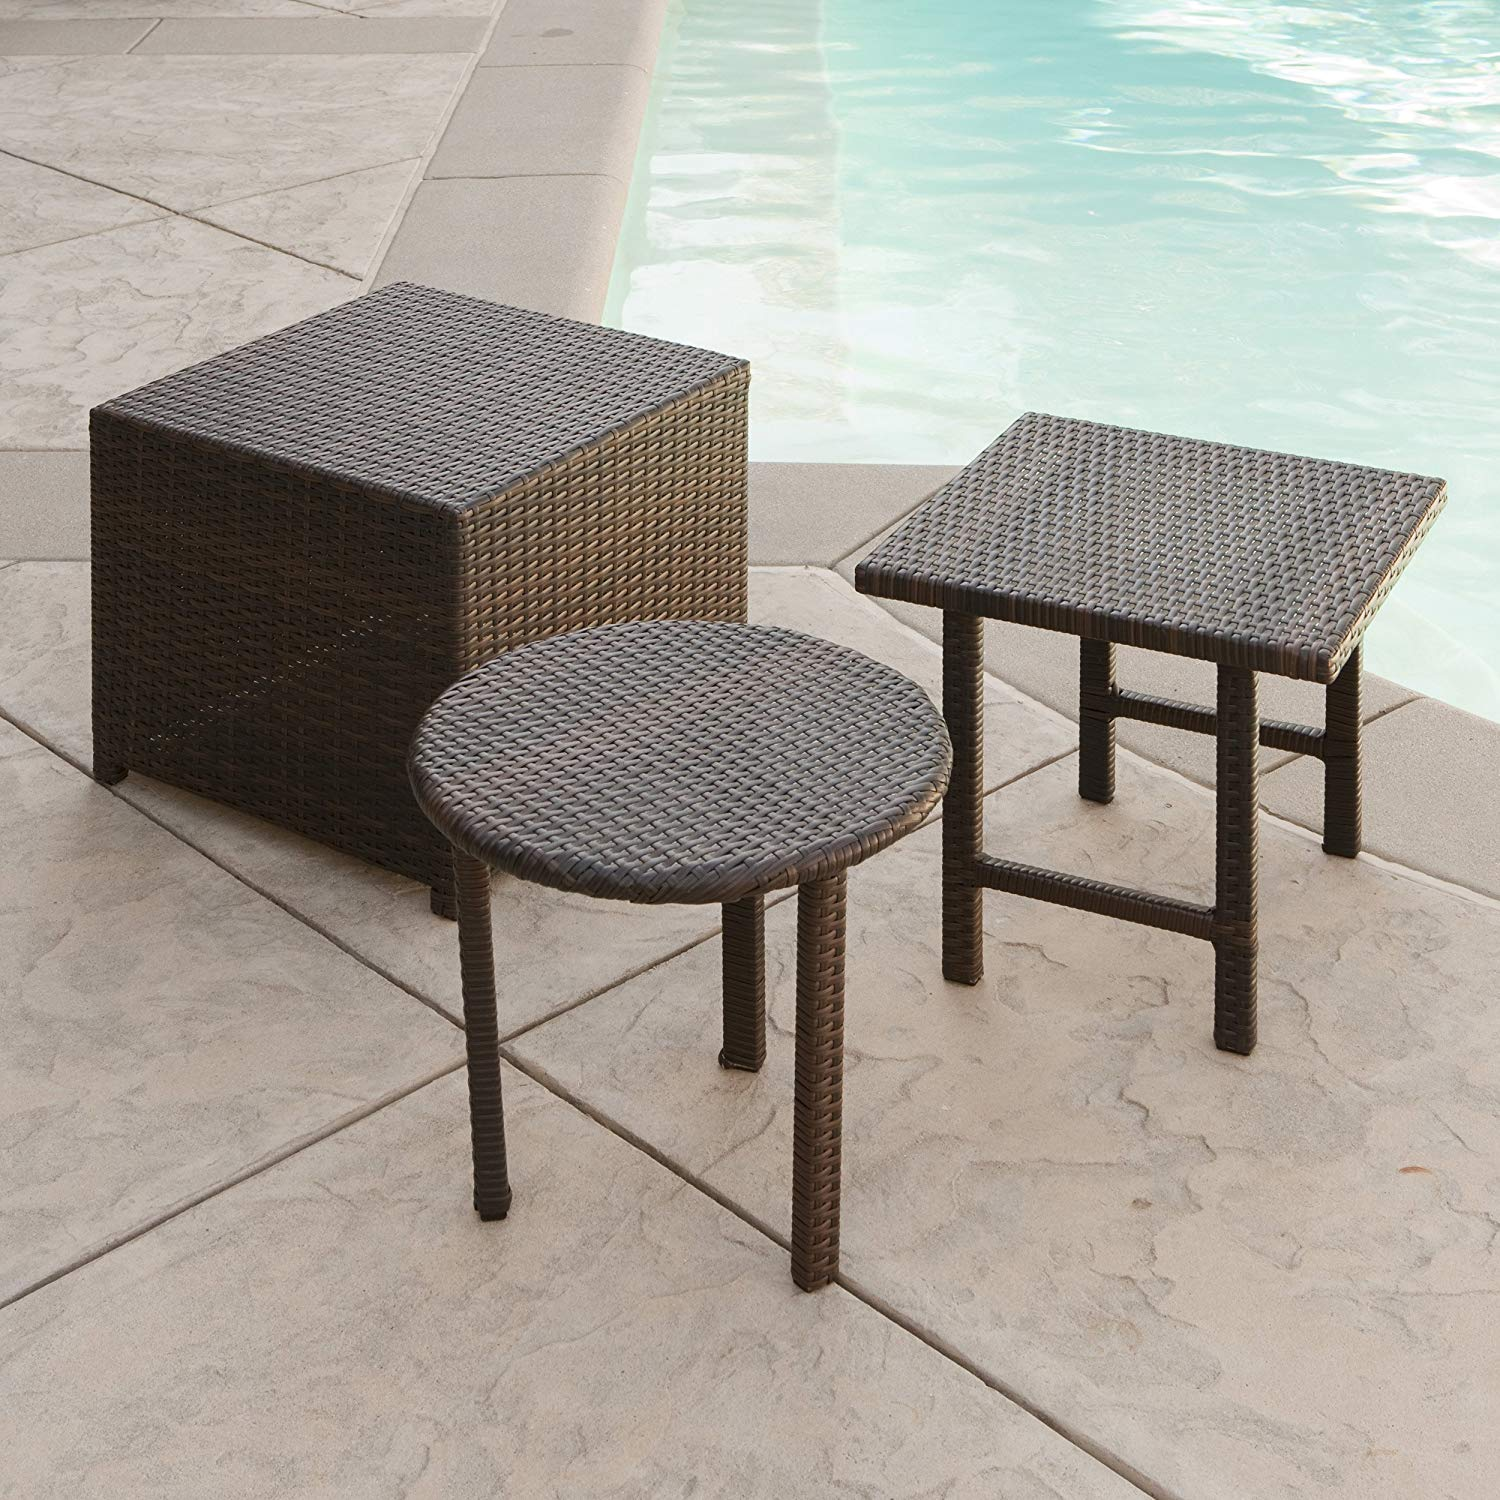 best selling palmilla wicker table set multibrown outdoor side patio tables garden pier one lamps hot water heater hairpin furniture legs bar height wood armchairs for small